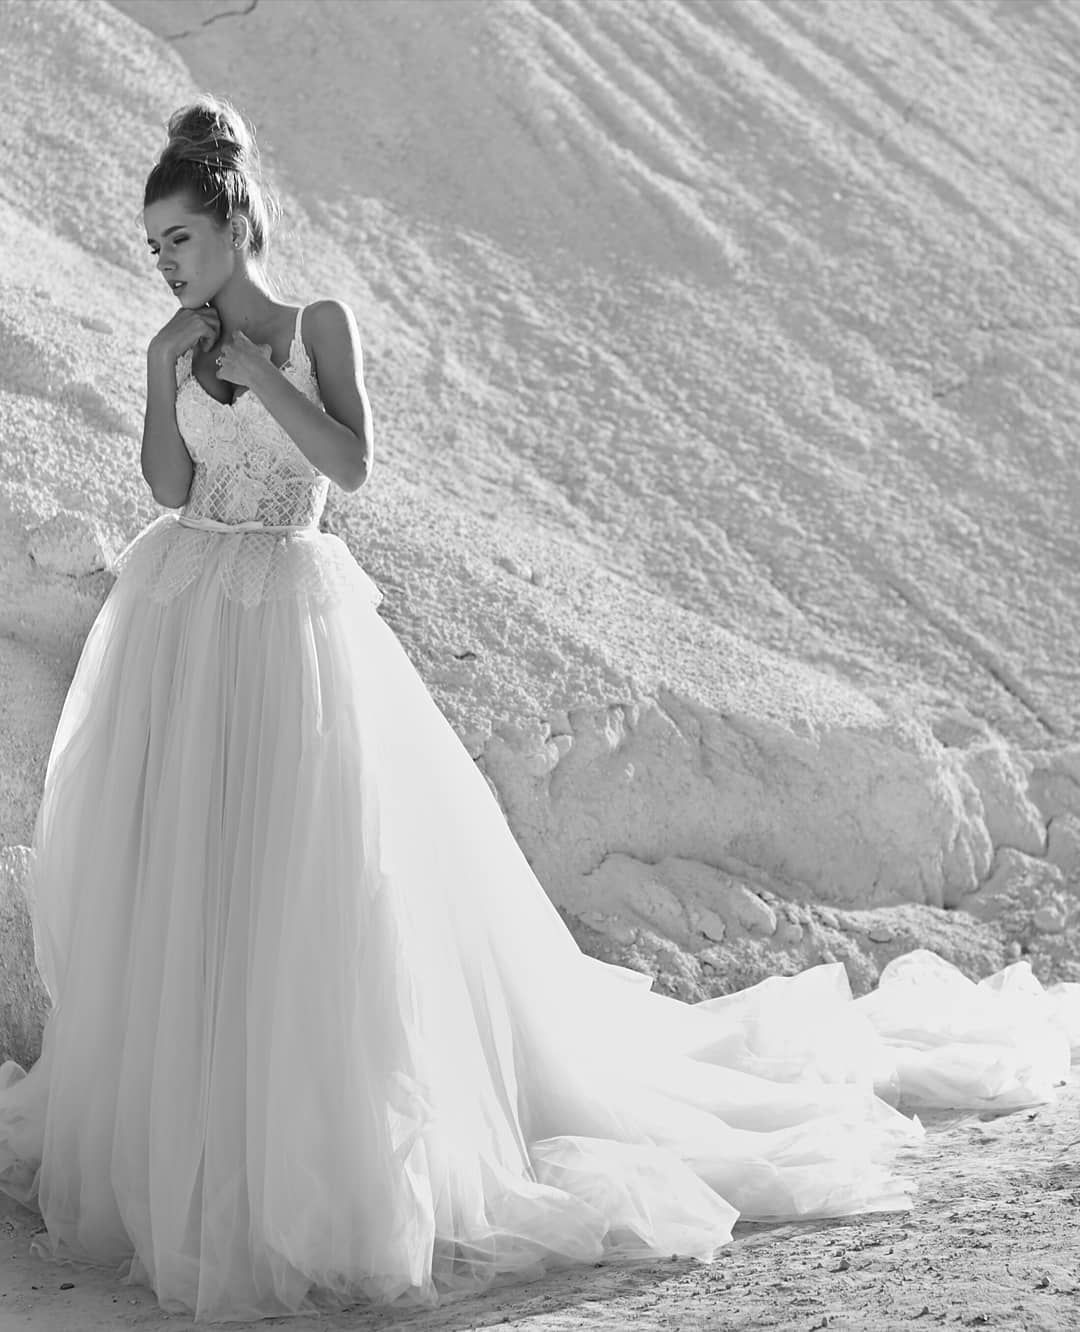 MIRIAMS Bride Atelier -  wedding dresses 2019 -  #weddingdress #weddinggown #weddingdresses